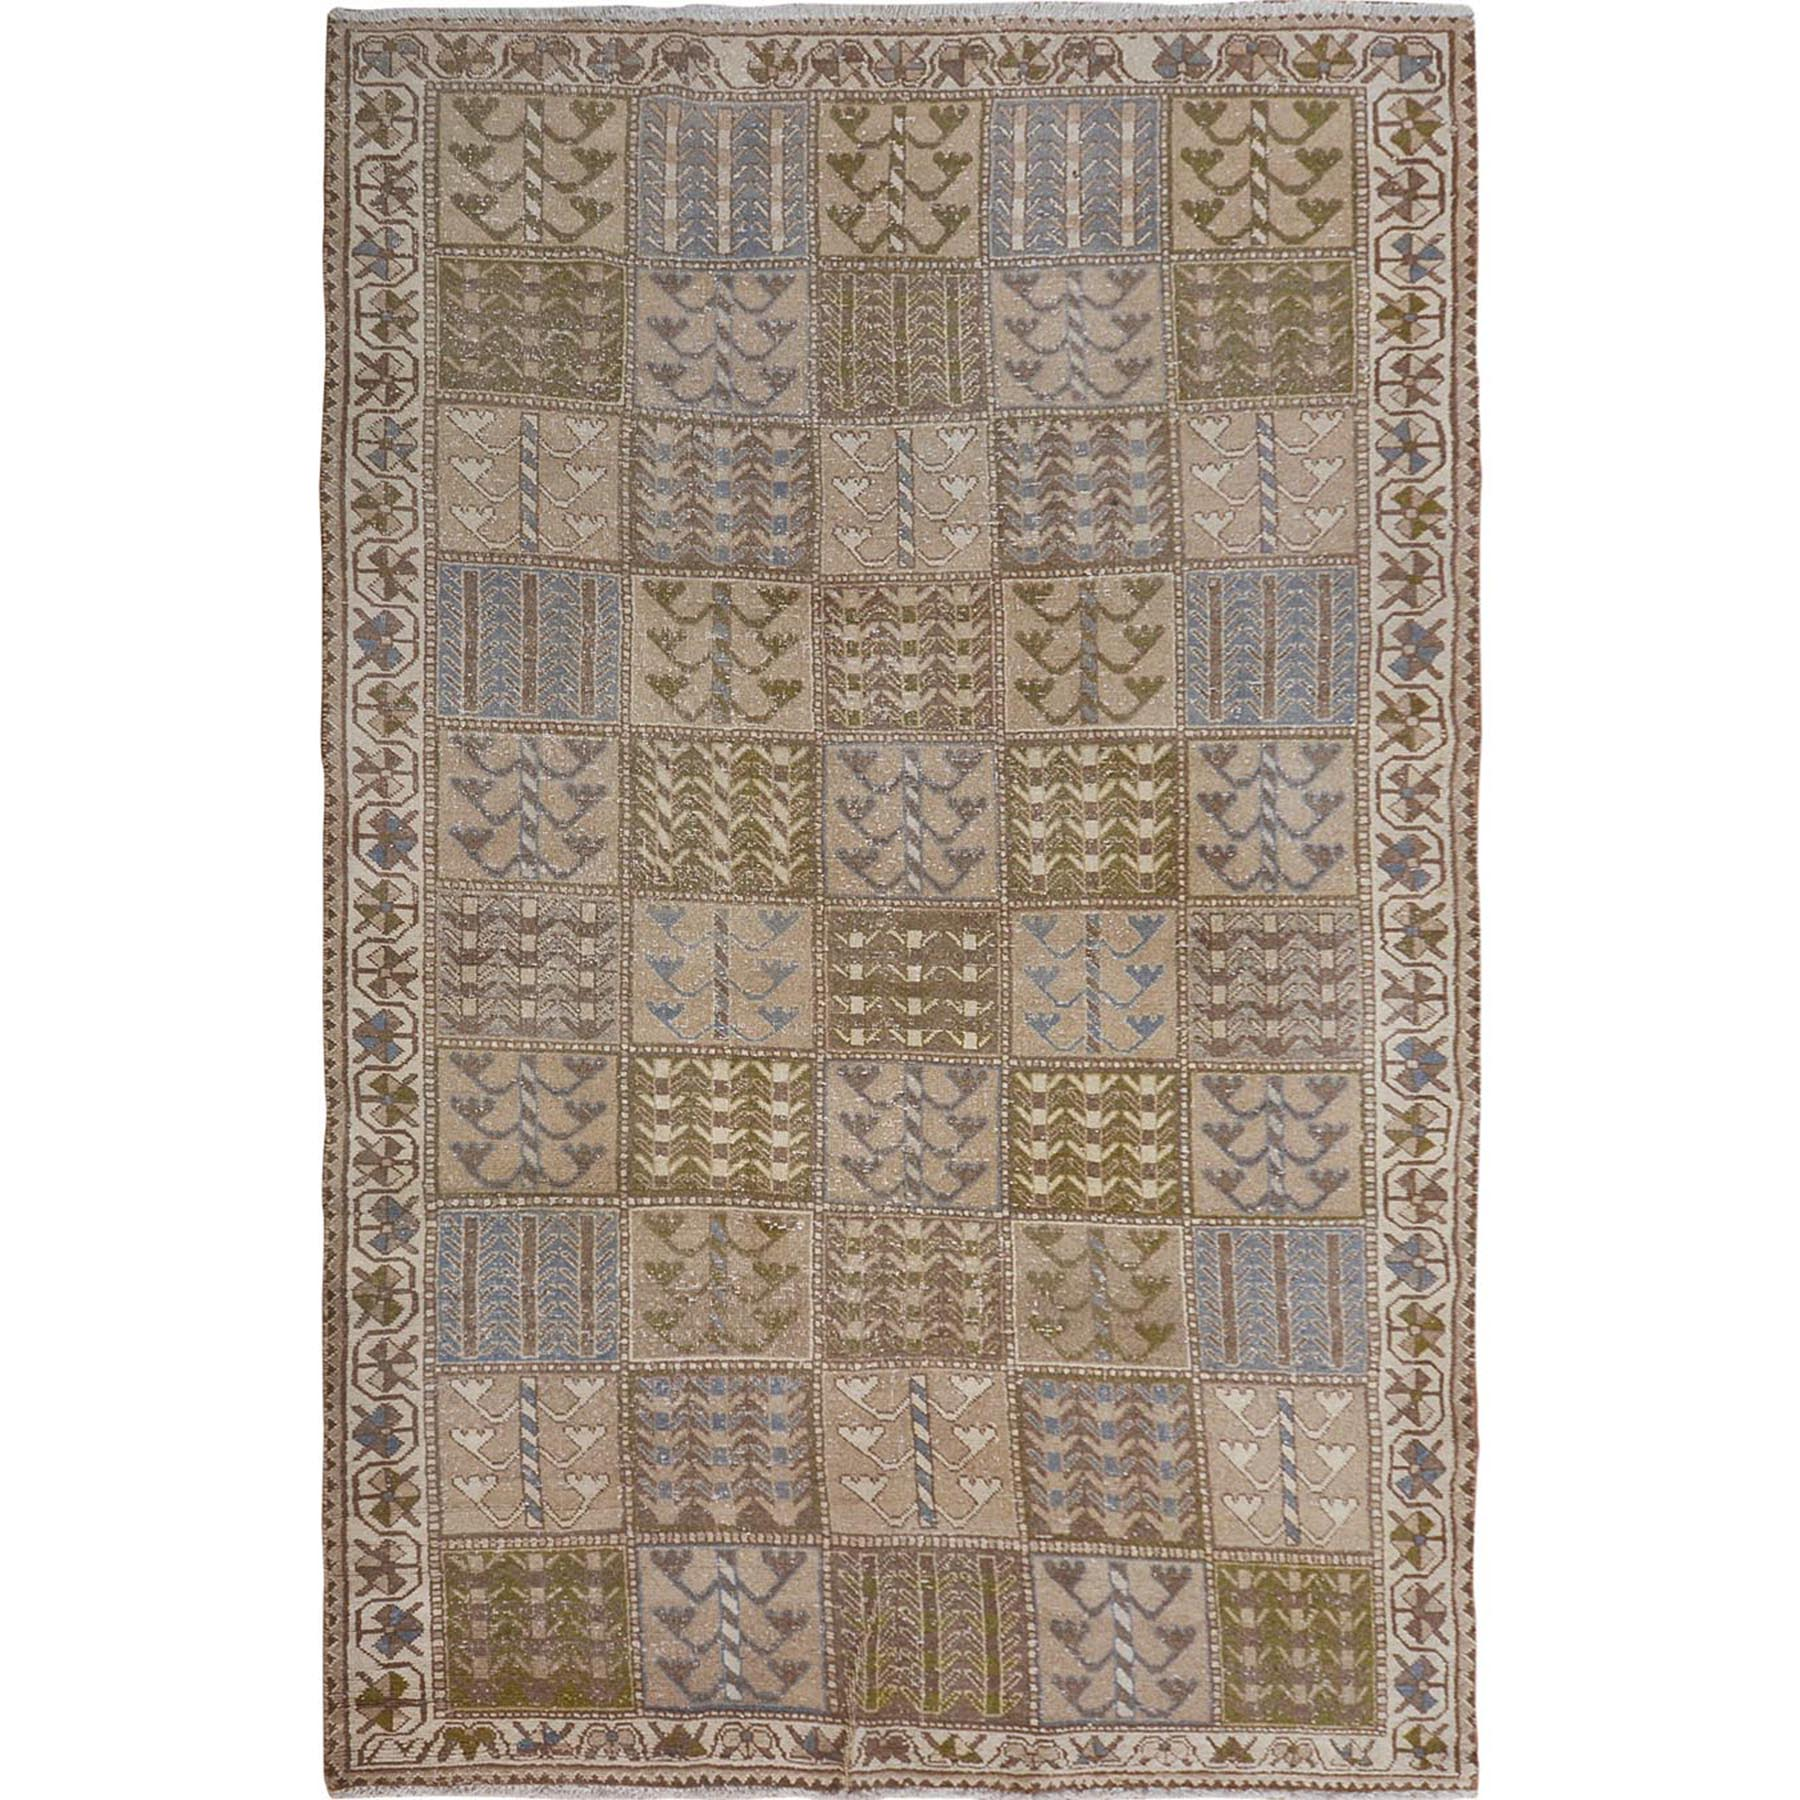 5'x9' Natural Colors Gallery Size Old and Worn Down Persian Bakhtiari Hand Woven Oriental Rug